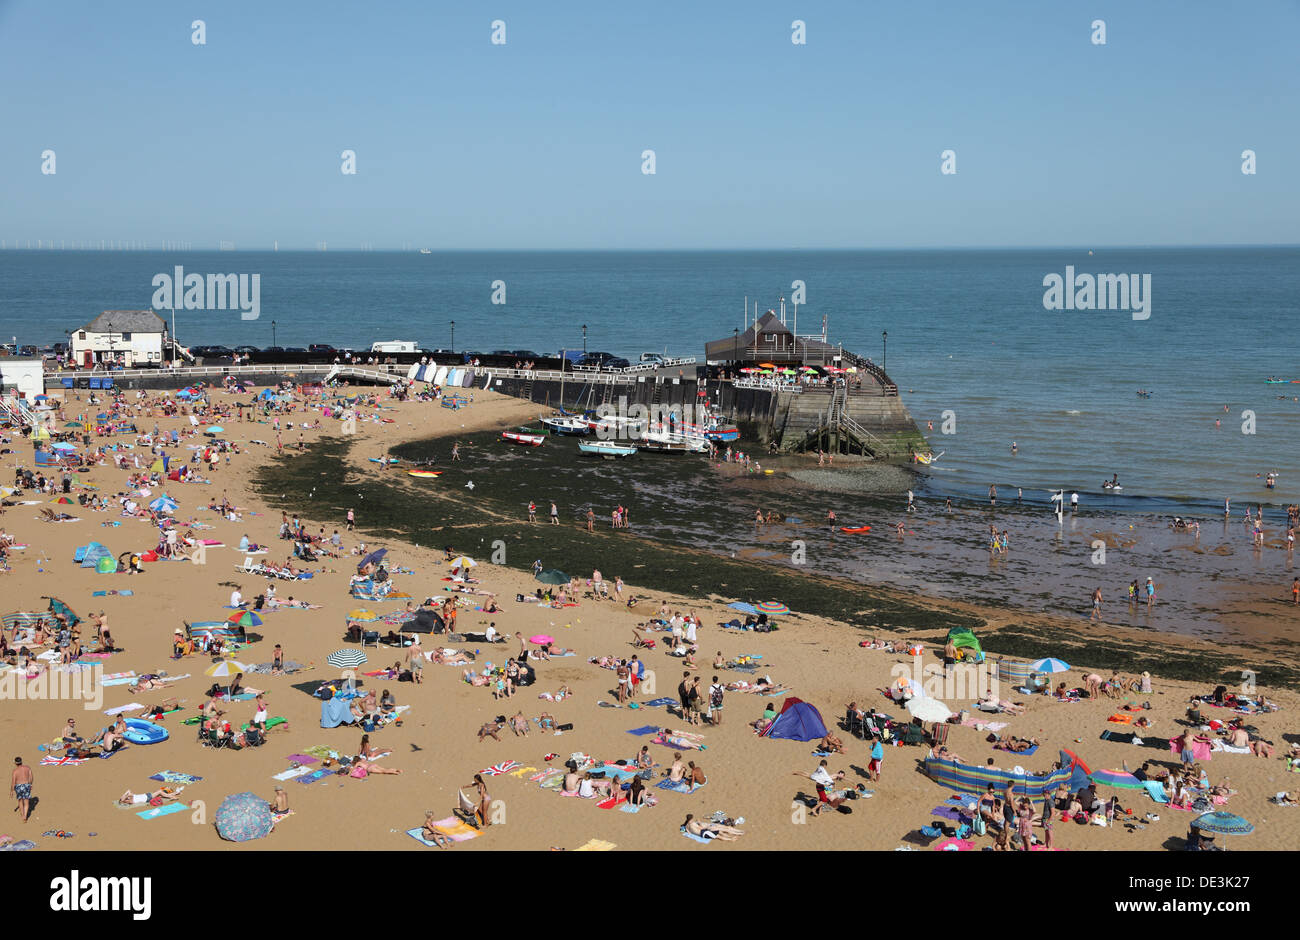 Sunbathers on the hottest day of the year on Broadstairs Viking Bay beach, Kent coast, England - Stock Image